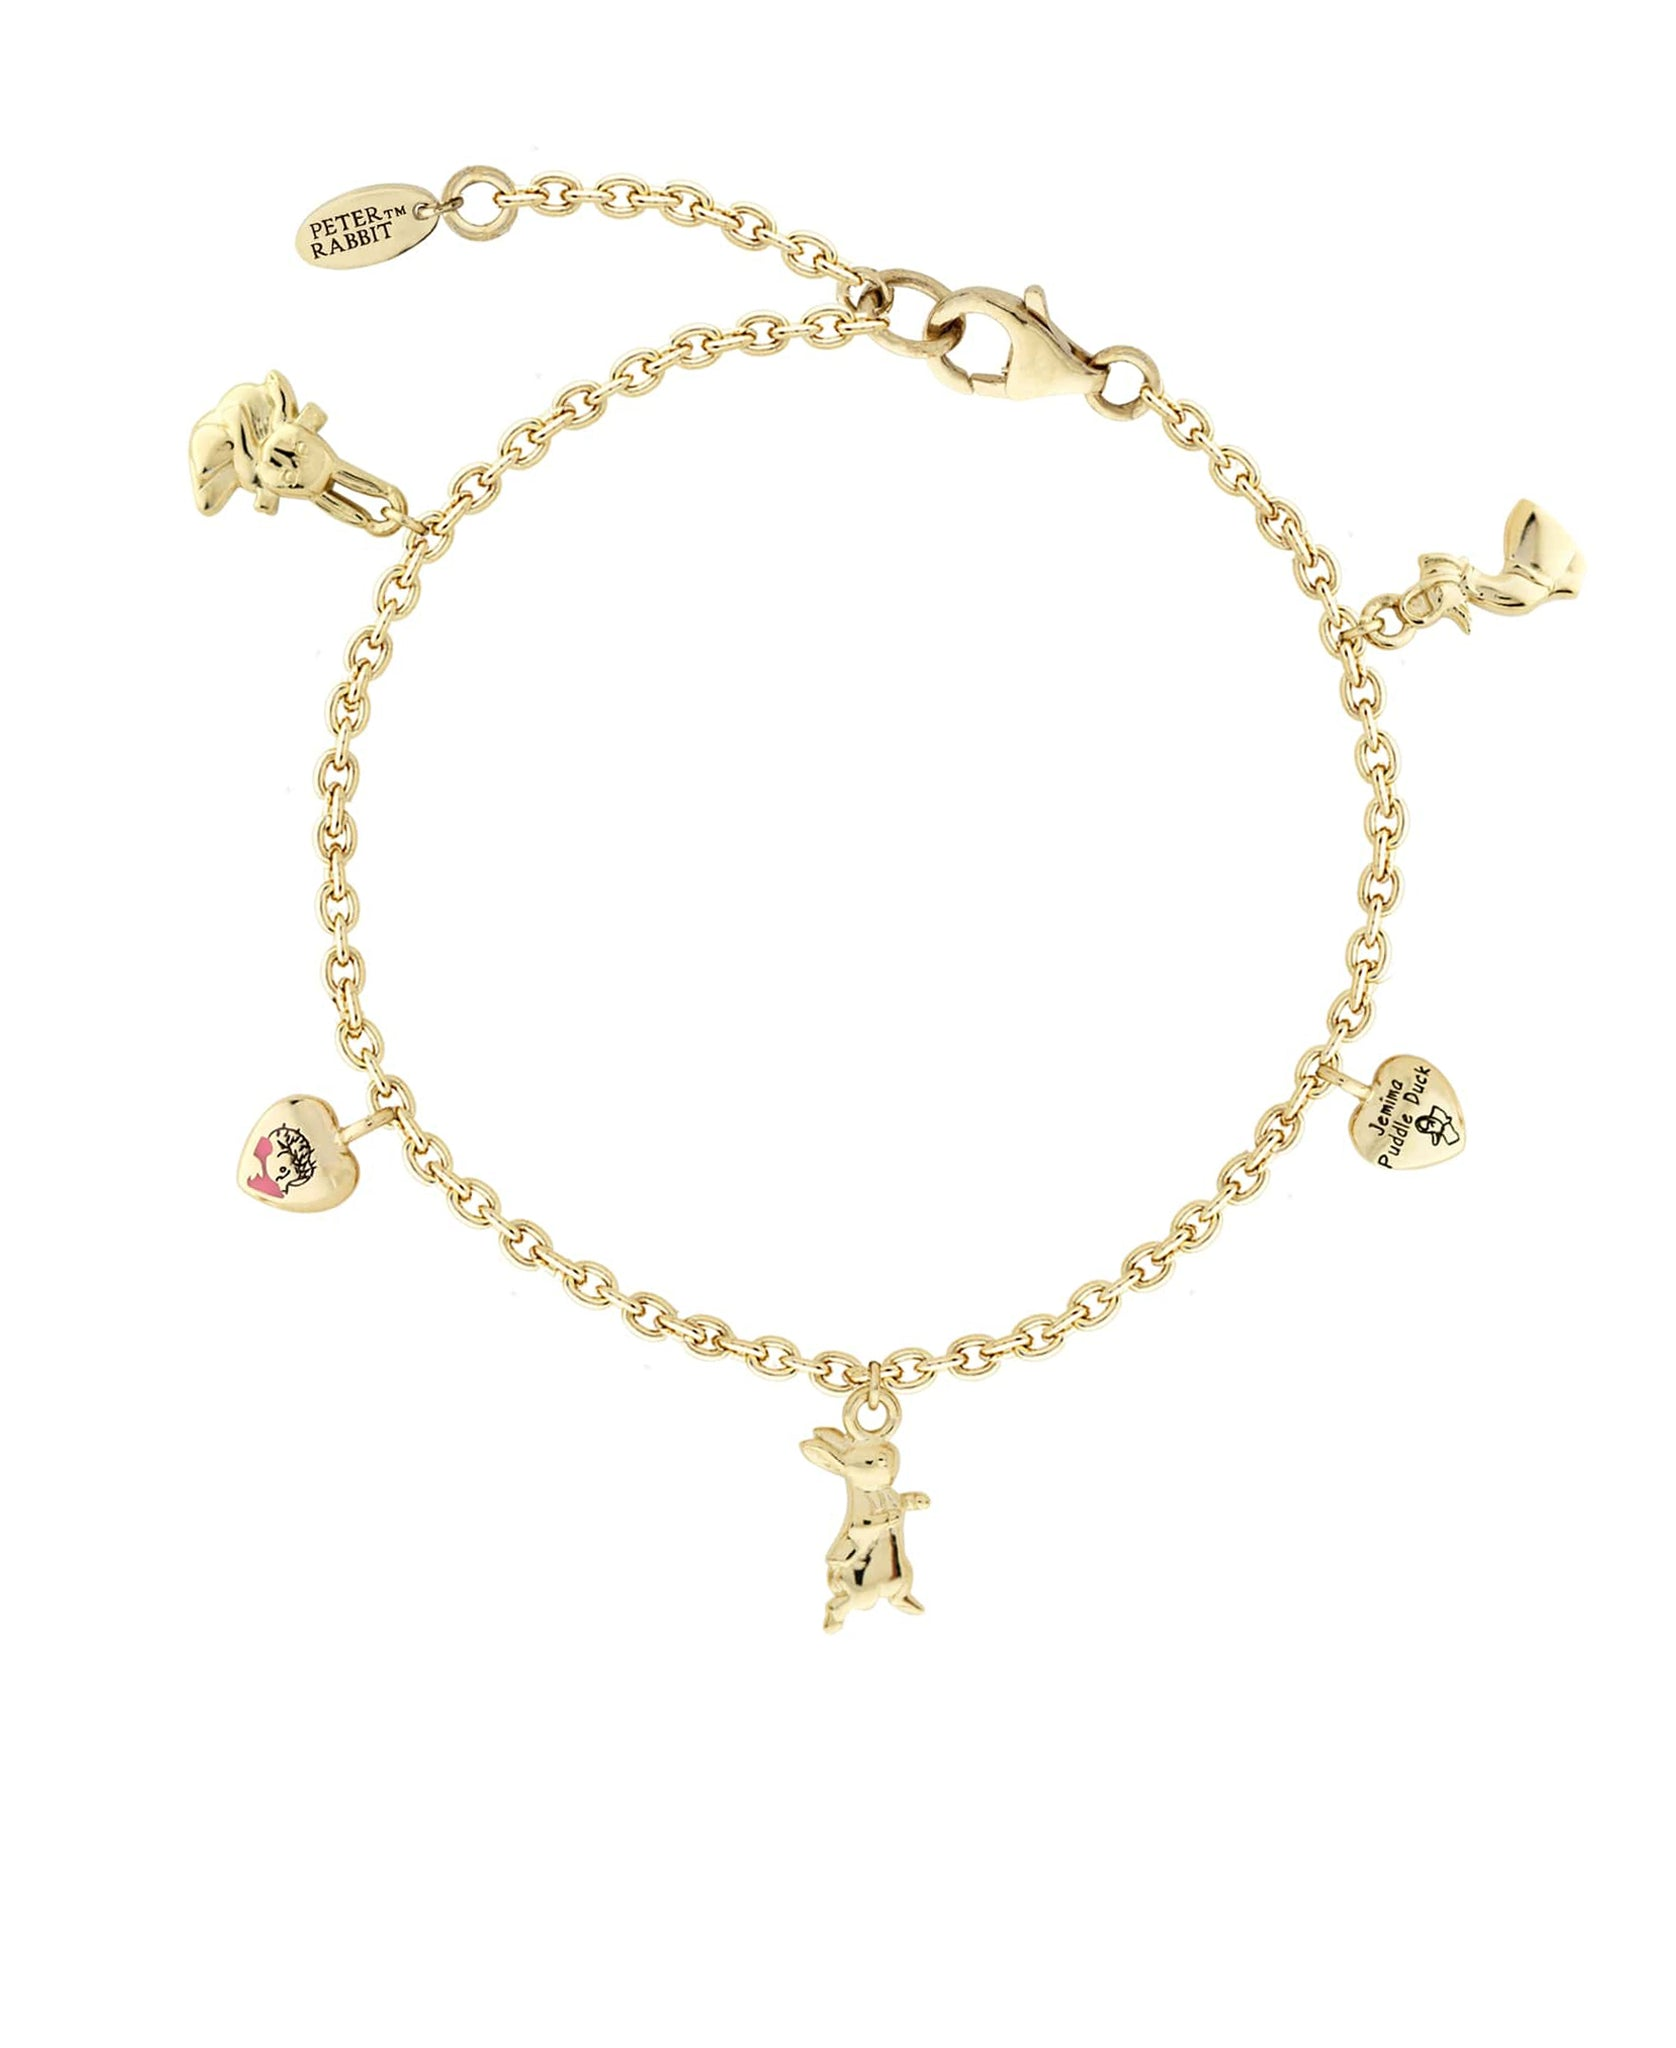 Beatrix Potter Gold Plated Sterling Silver Charm Bracelet - Rhona Sutton Jewellery